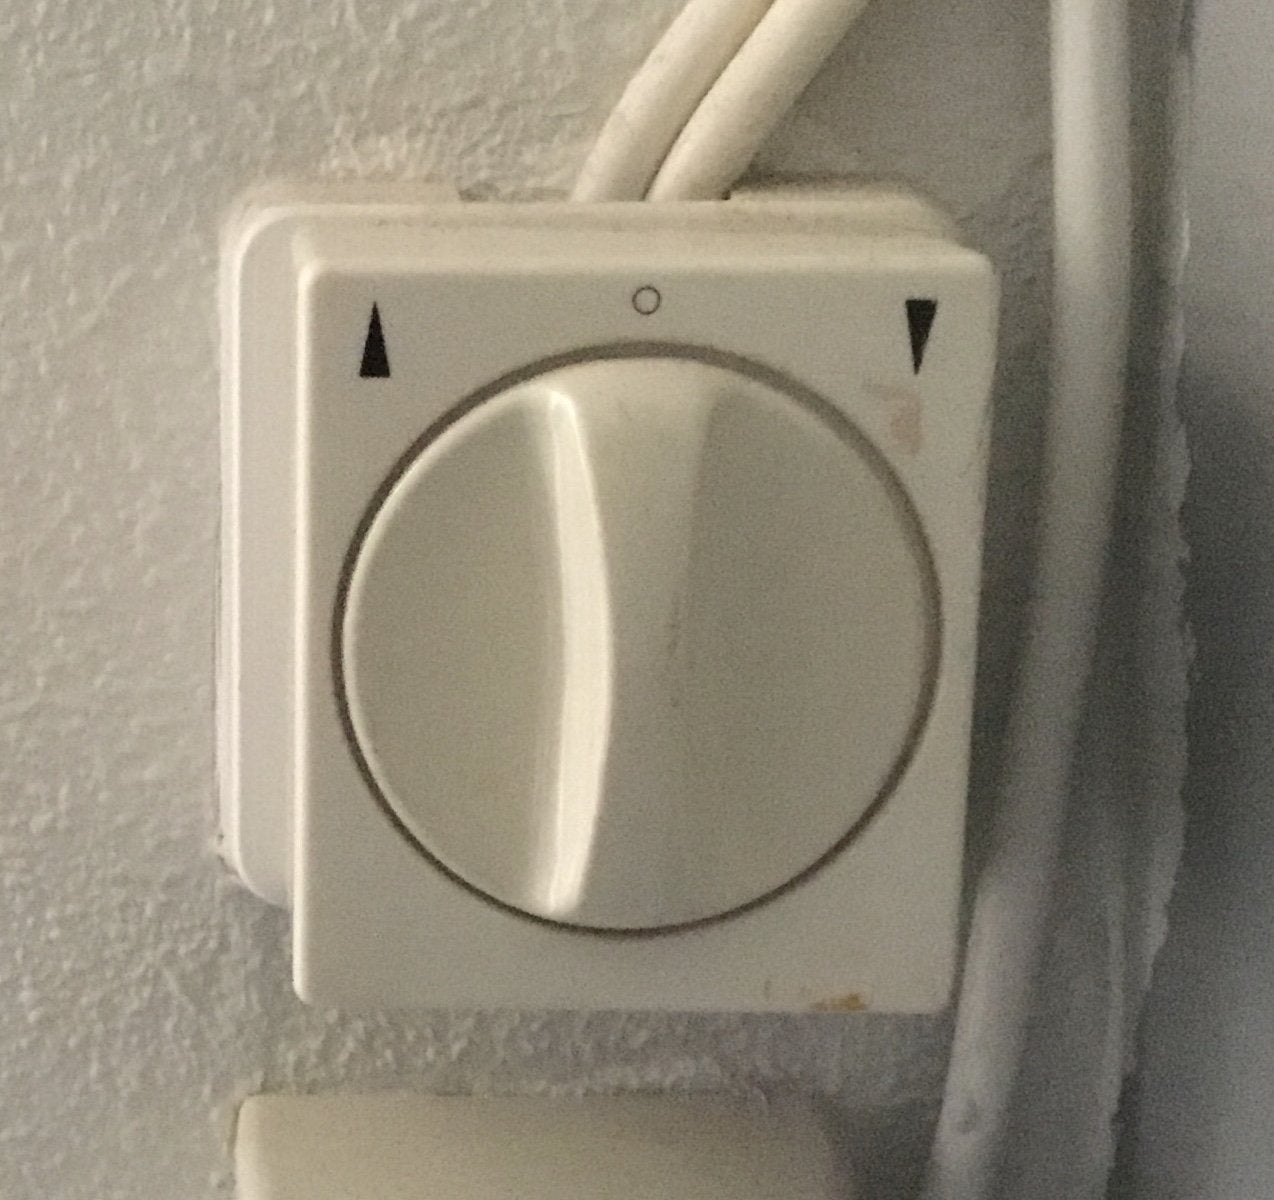 Replace the shadow screen switch